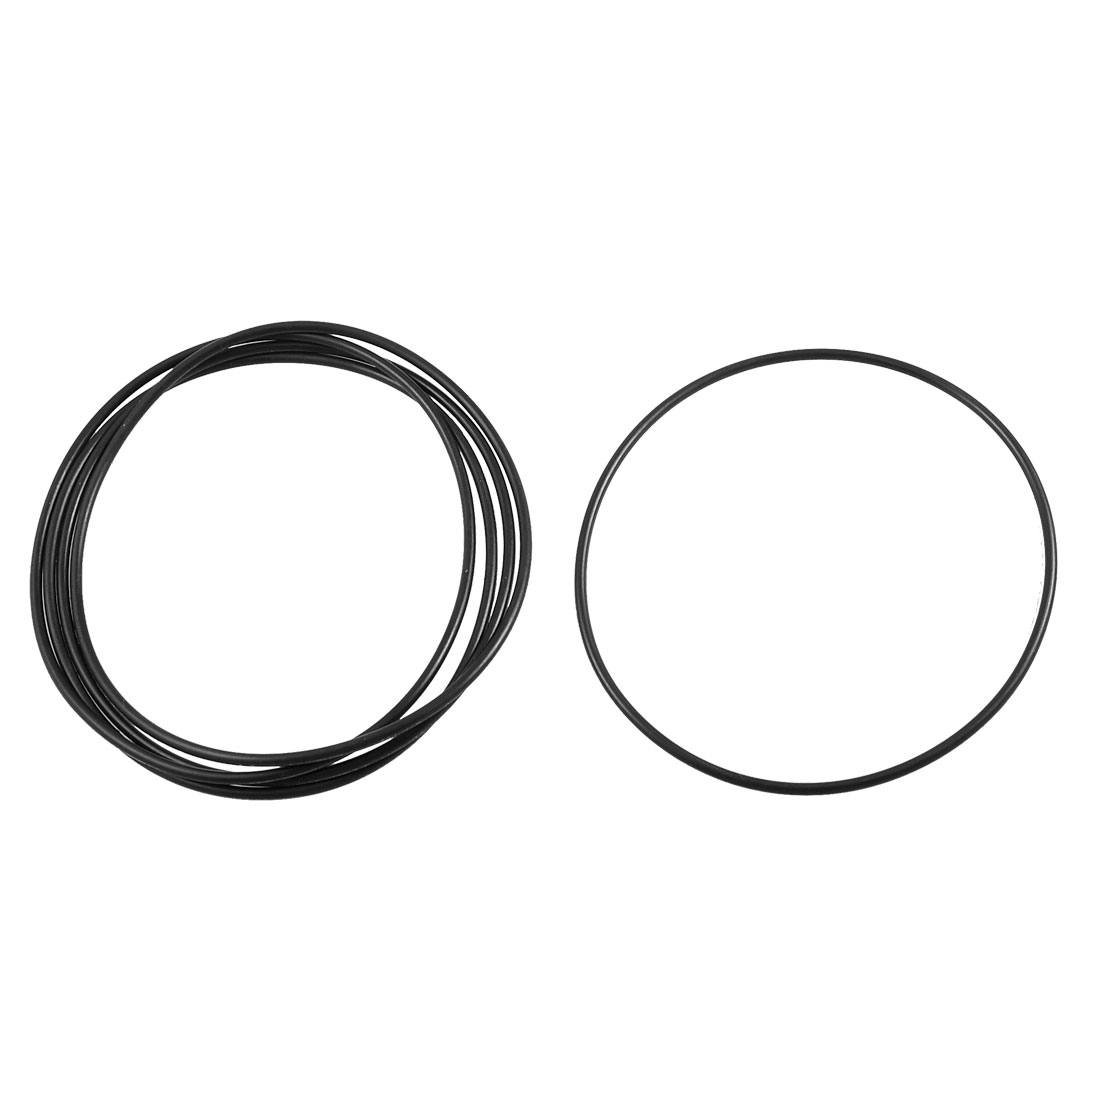 5 Pcs Black Rubber Sealing Oil Filter O Rings Gaskets 105mm x 100mm x 2.65mm